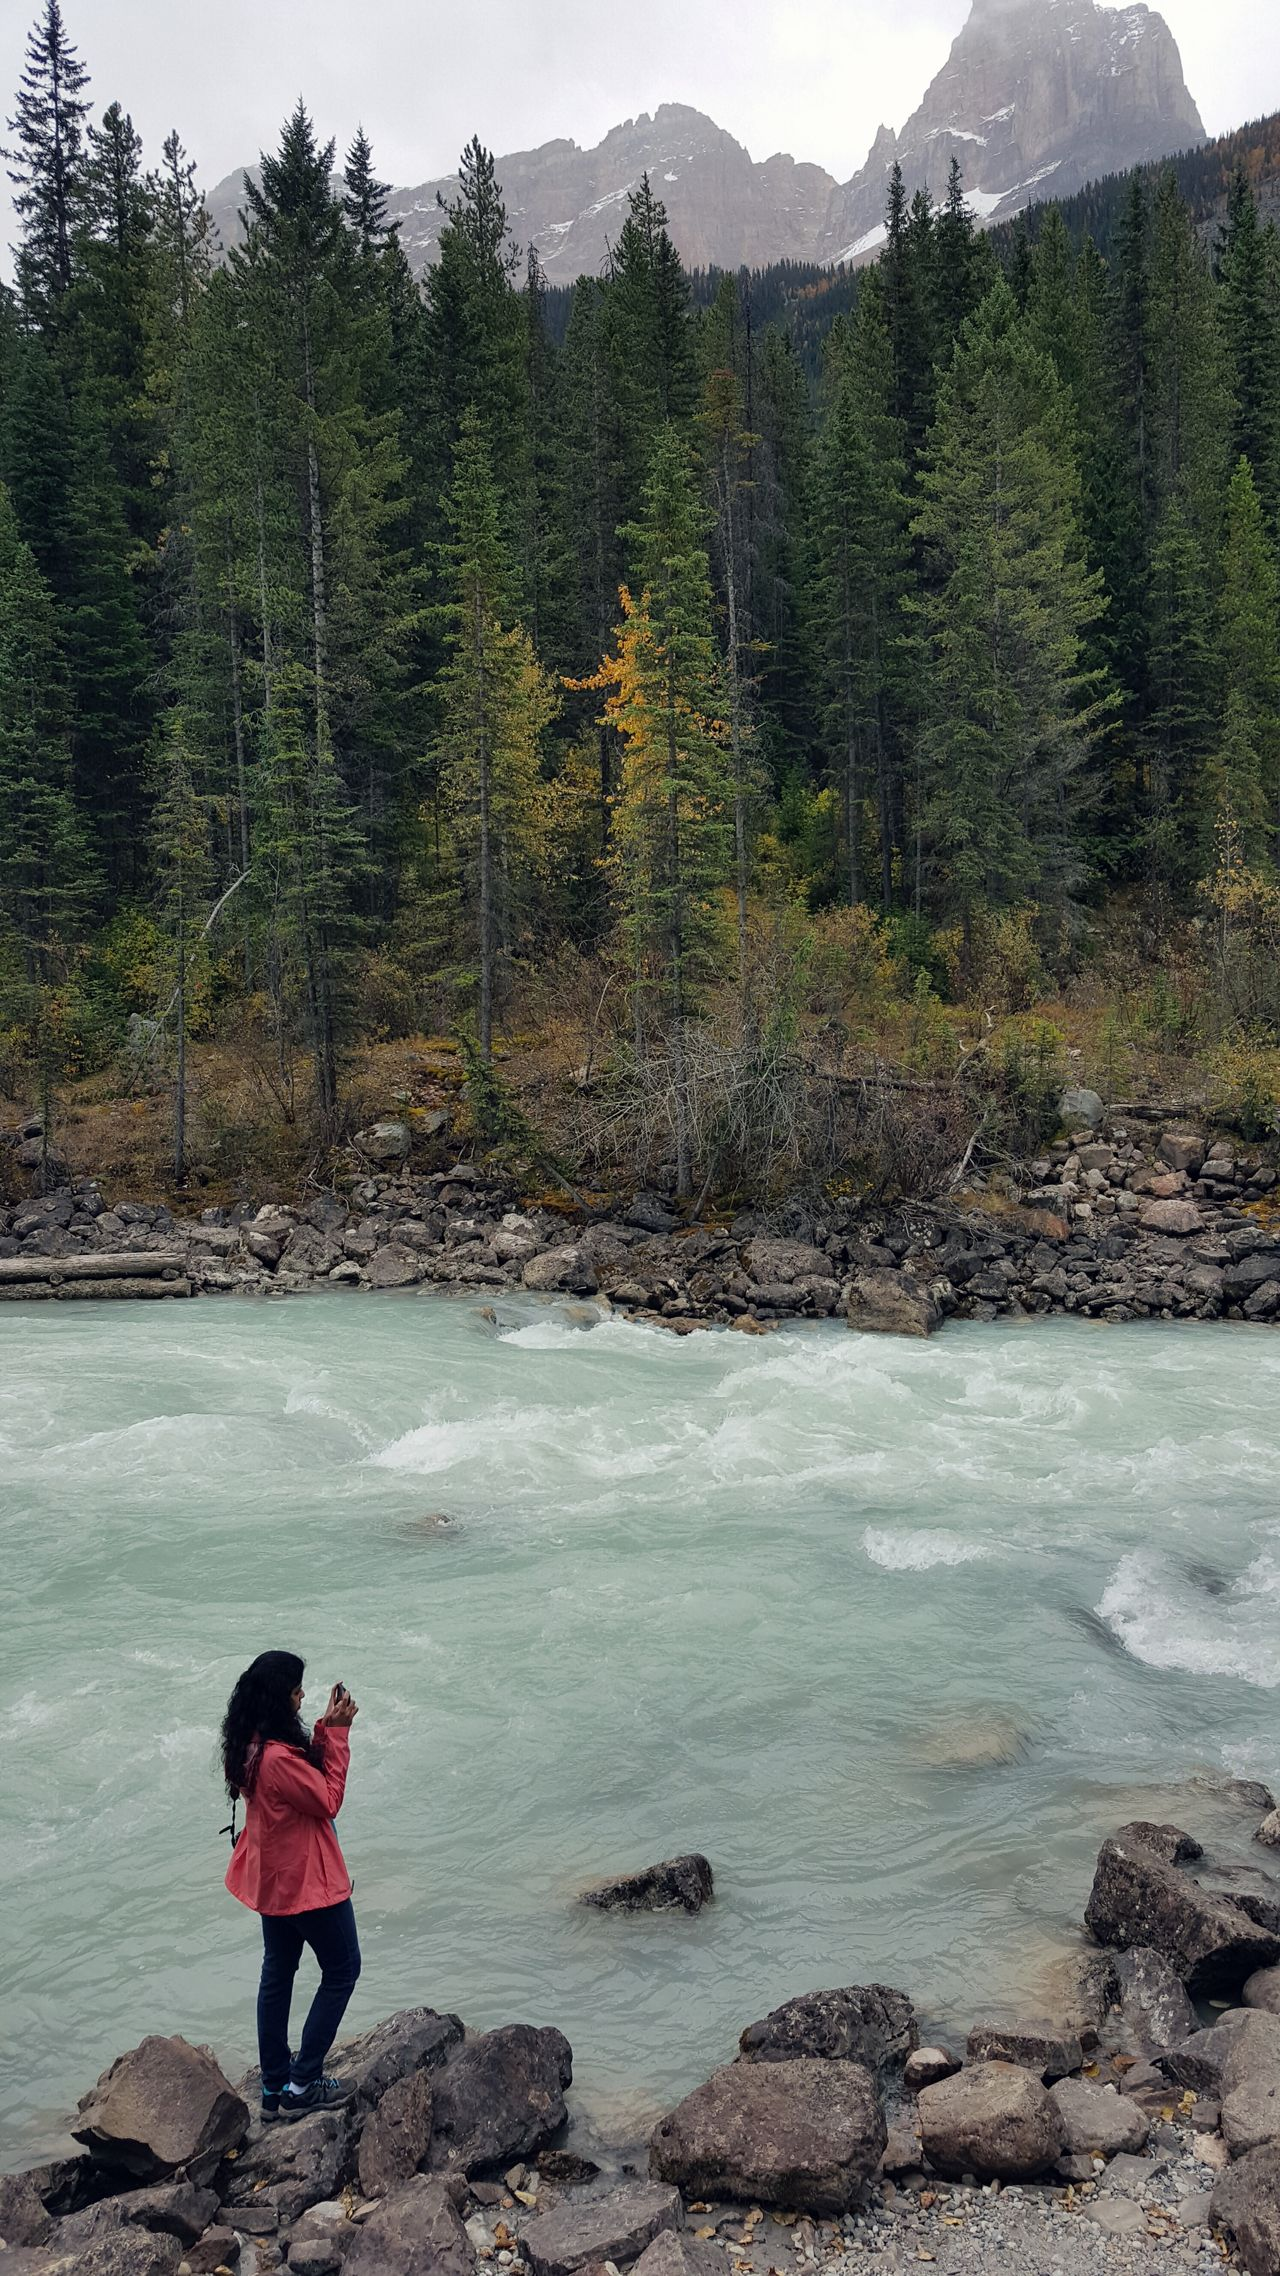 Women And Nature Spring Rain Tranquility Female Female Hiker Hiking One Woman Young Female Rainy Weather Raincoat Activewear Active Lifestyle  Mountain Stream Beauty In Nature One Person Outdoors Nature Canadian Rockies